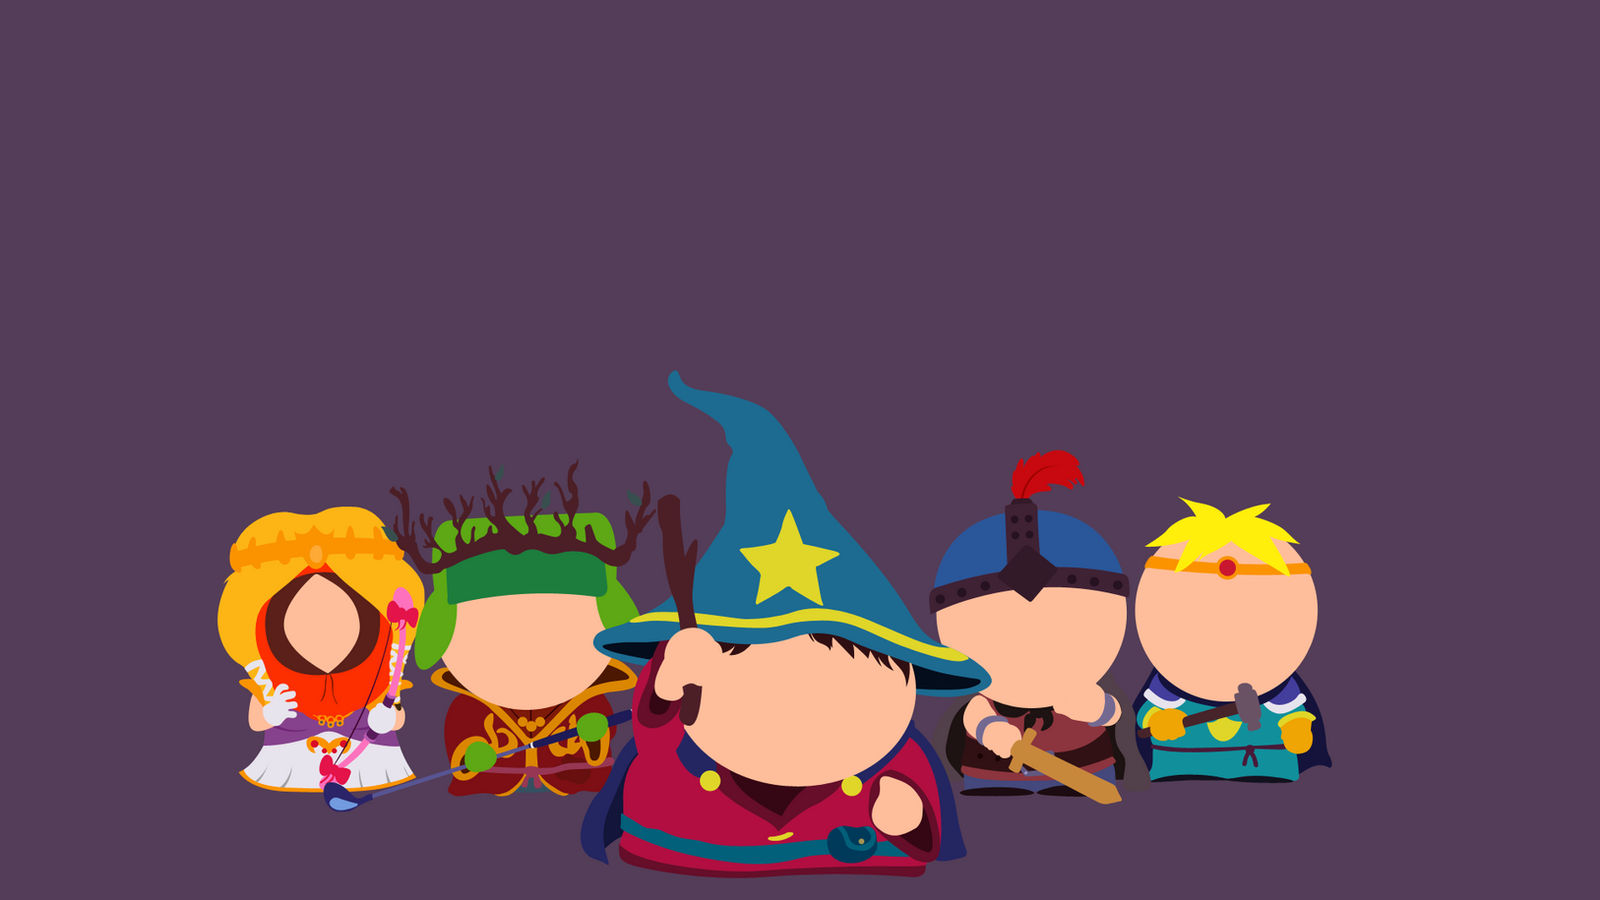 Minimalist South Park Stick Of Truth By Lumoslaurie On Deviantart